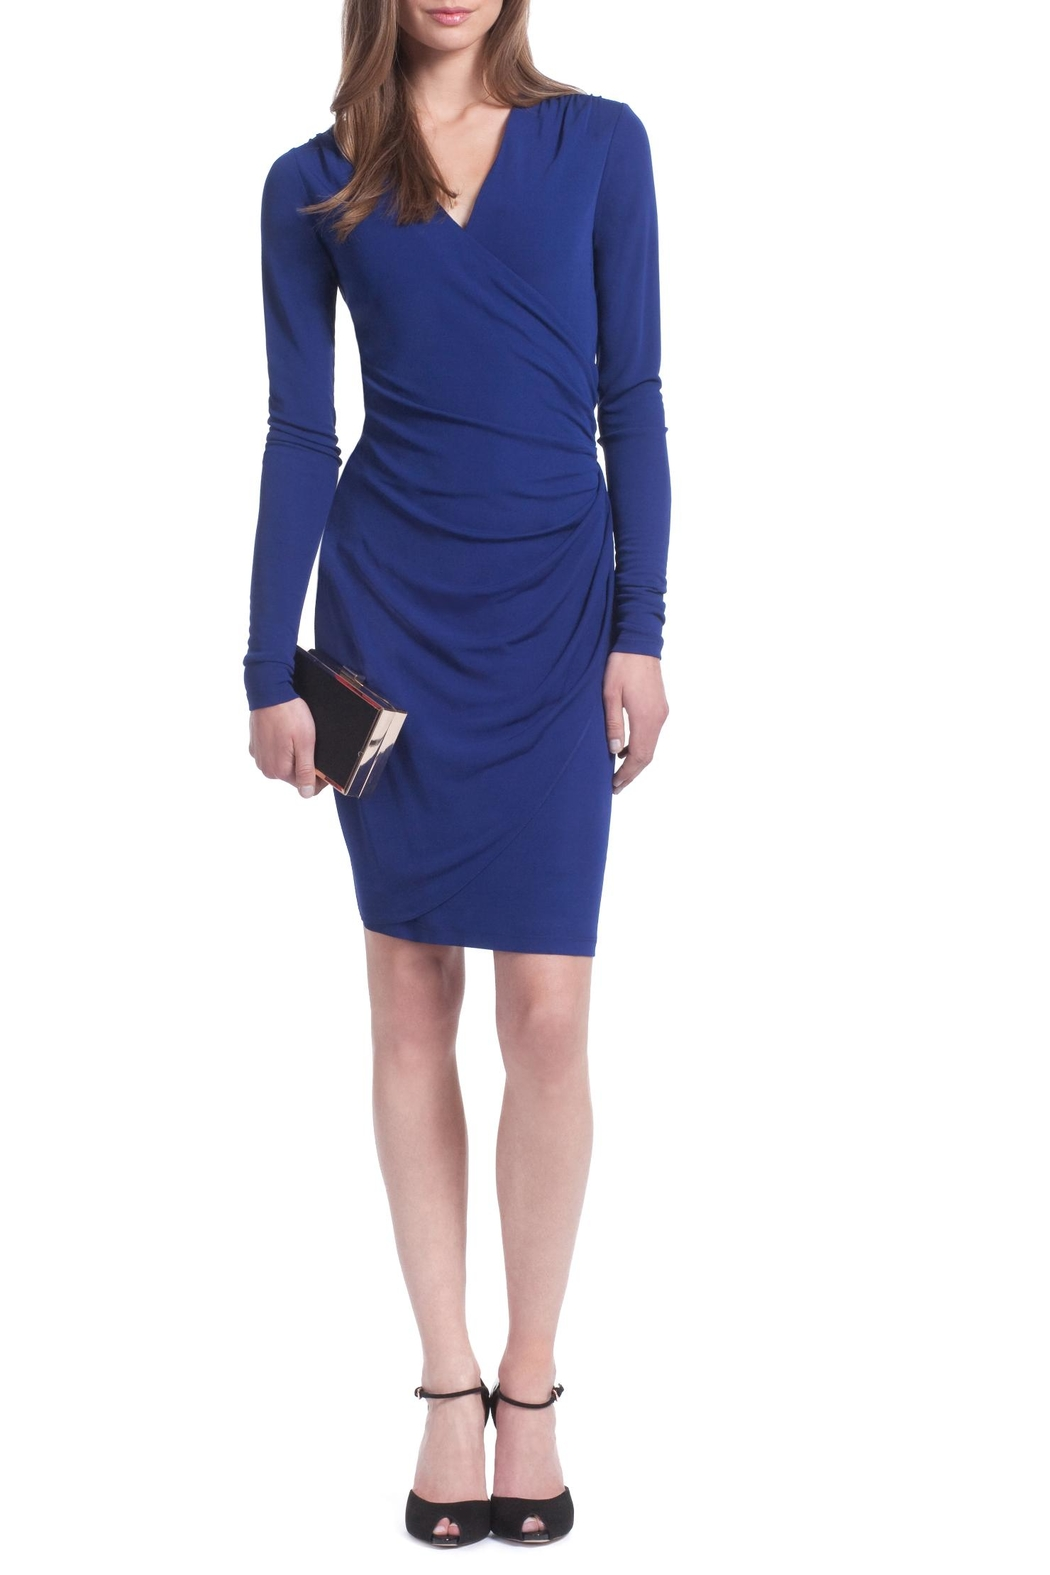 bac229d314f5 Shoshanna Clarice Dress from New Jersey by Dressed by Lori — Shoptiques